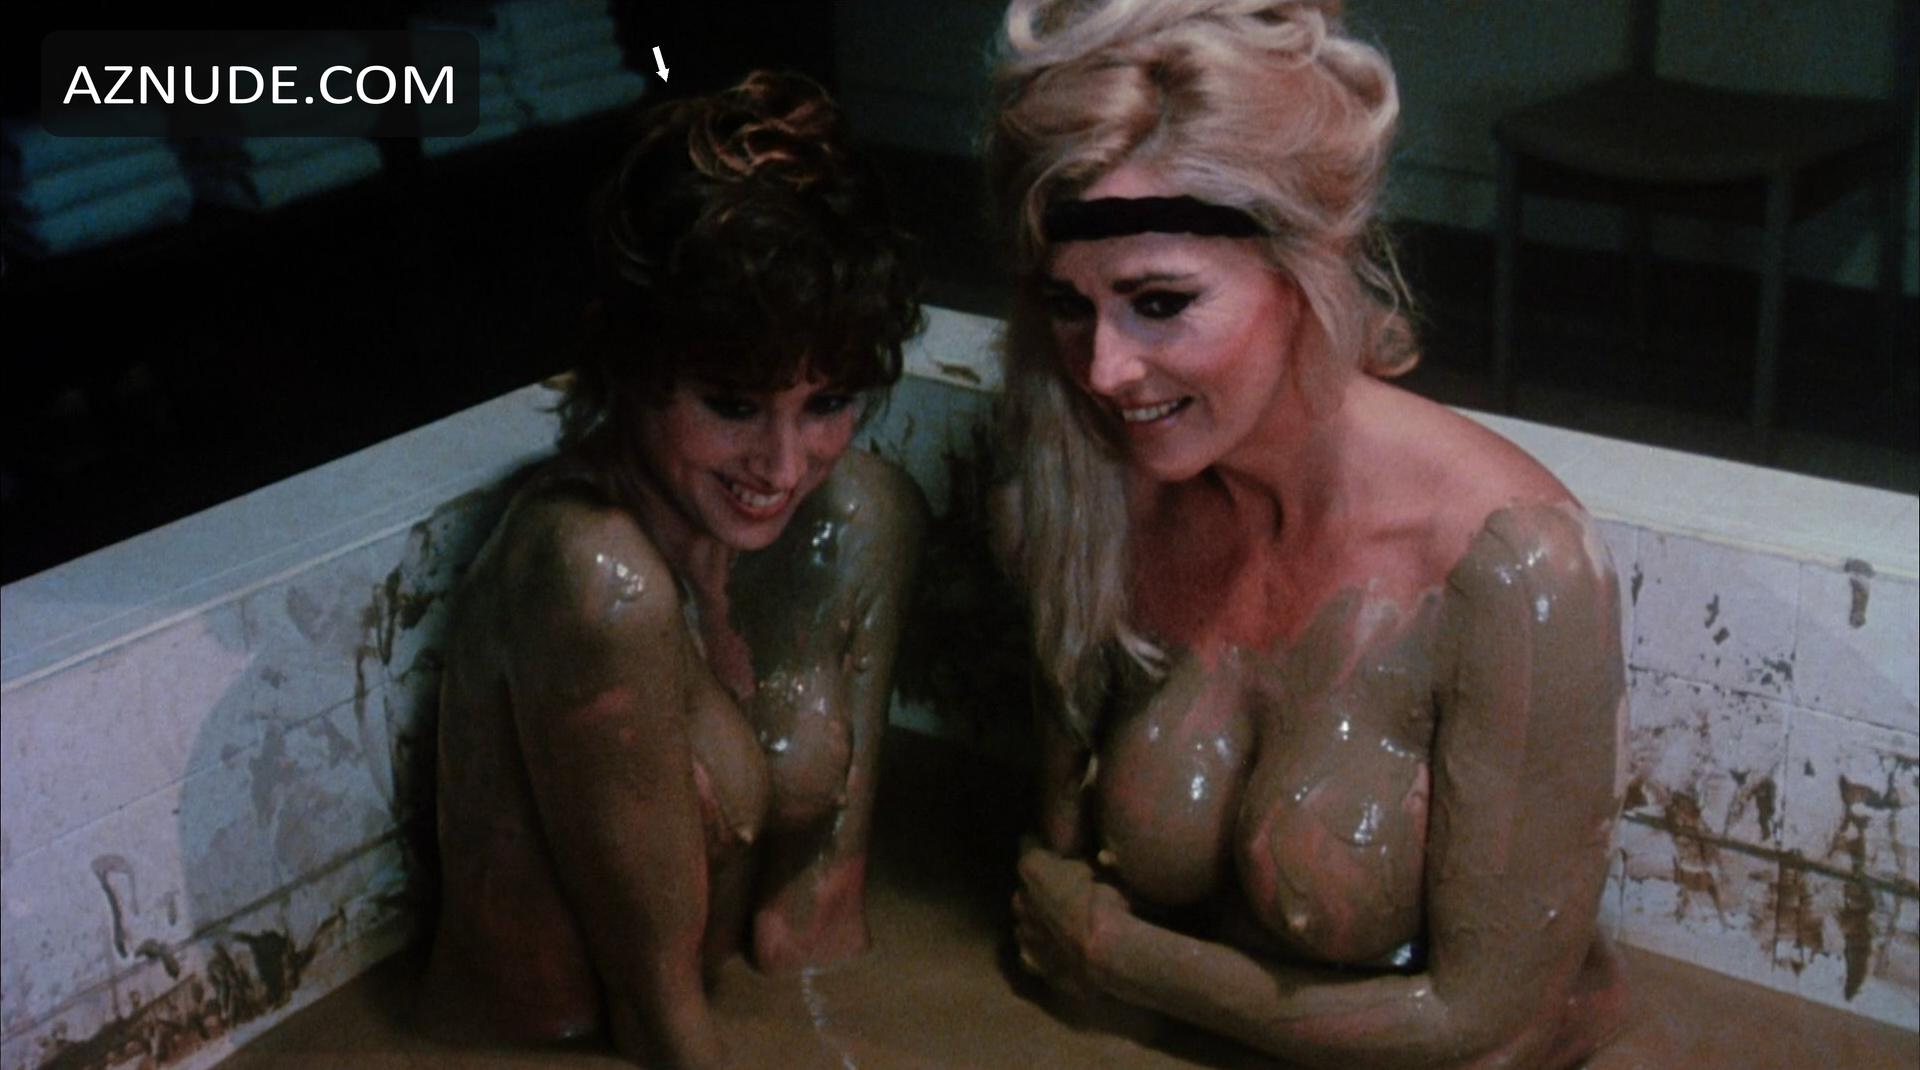 nude sex scene from hollywood movie